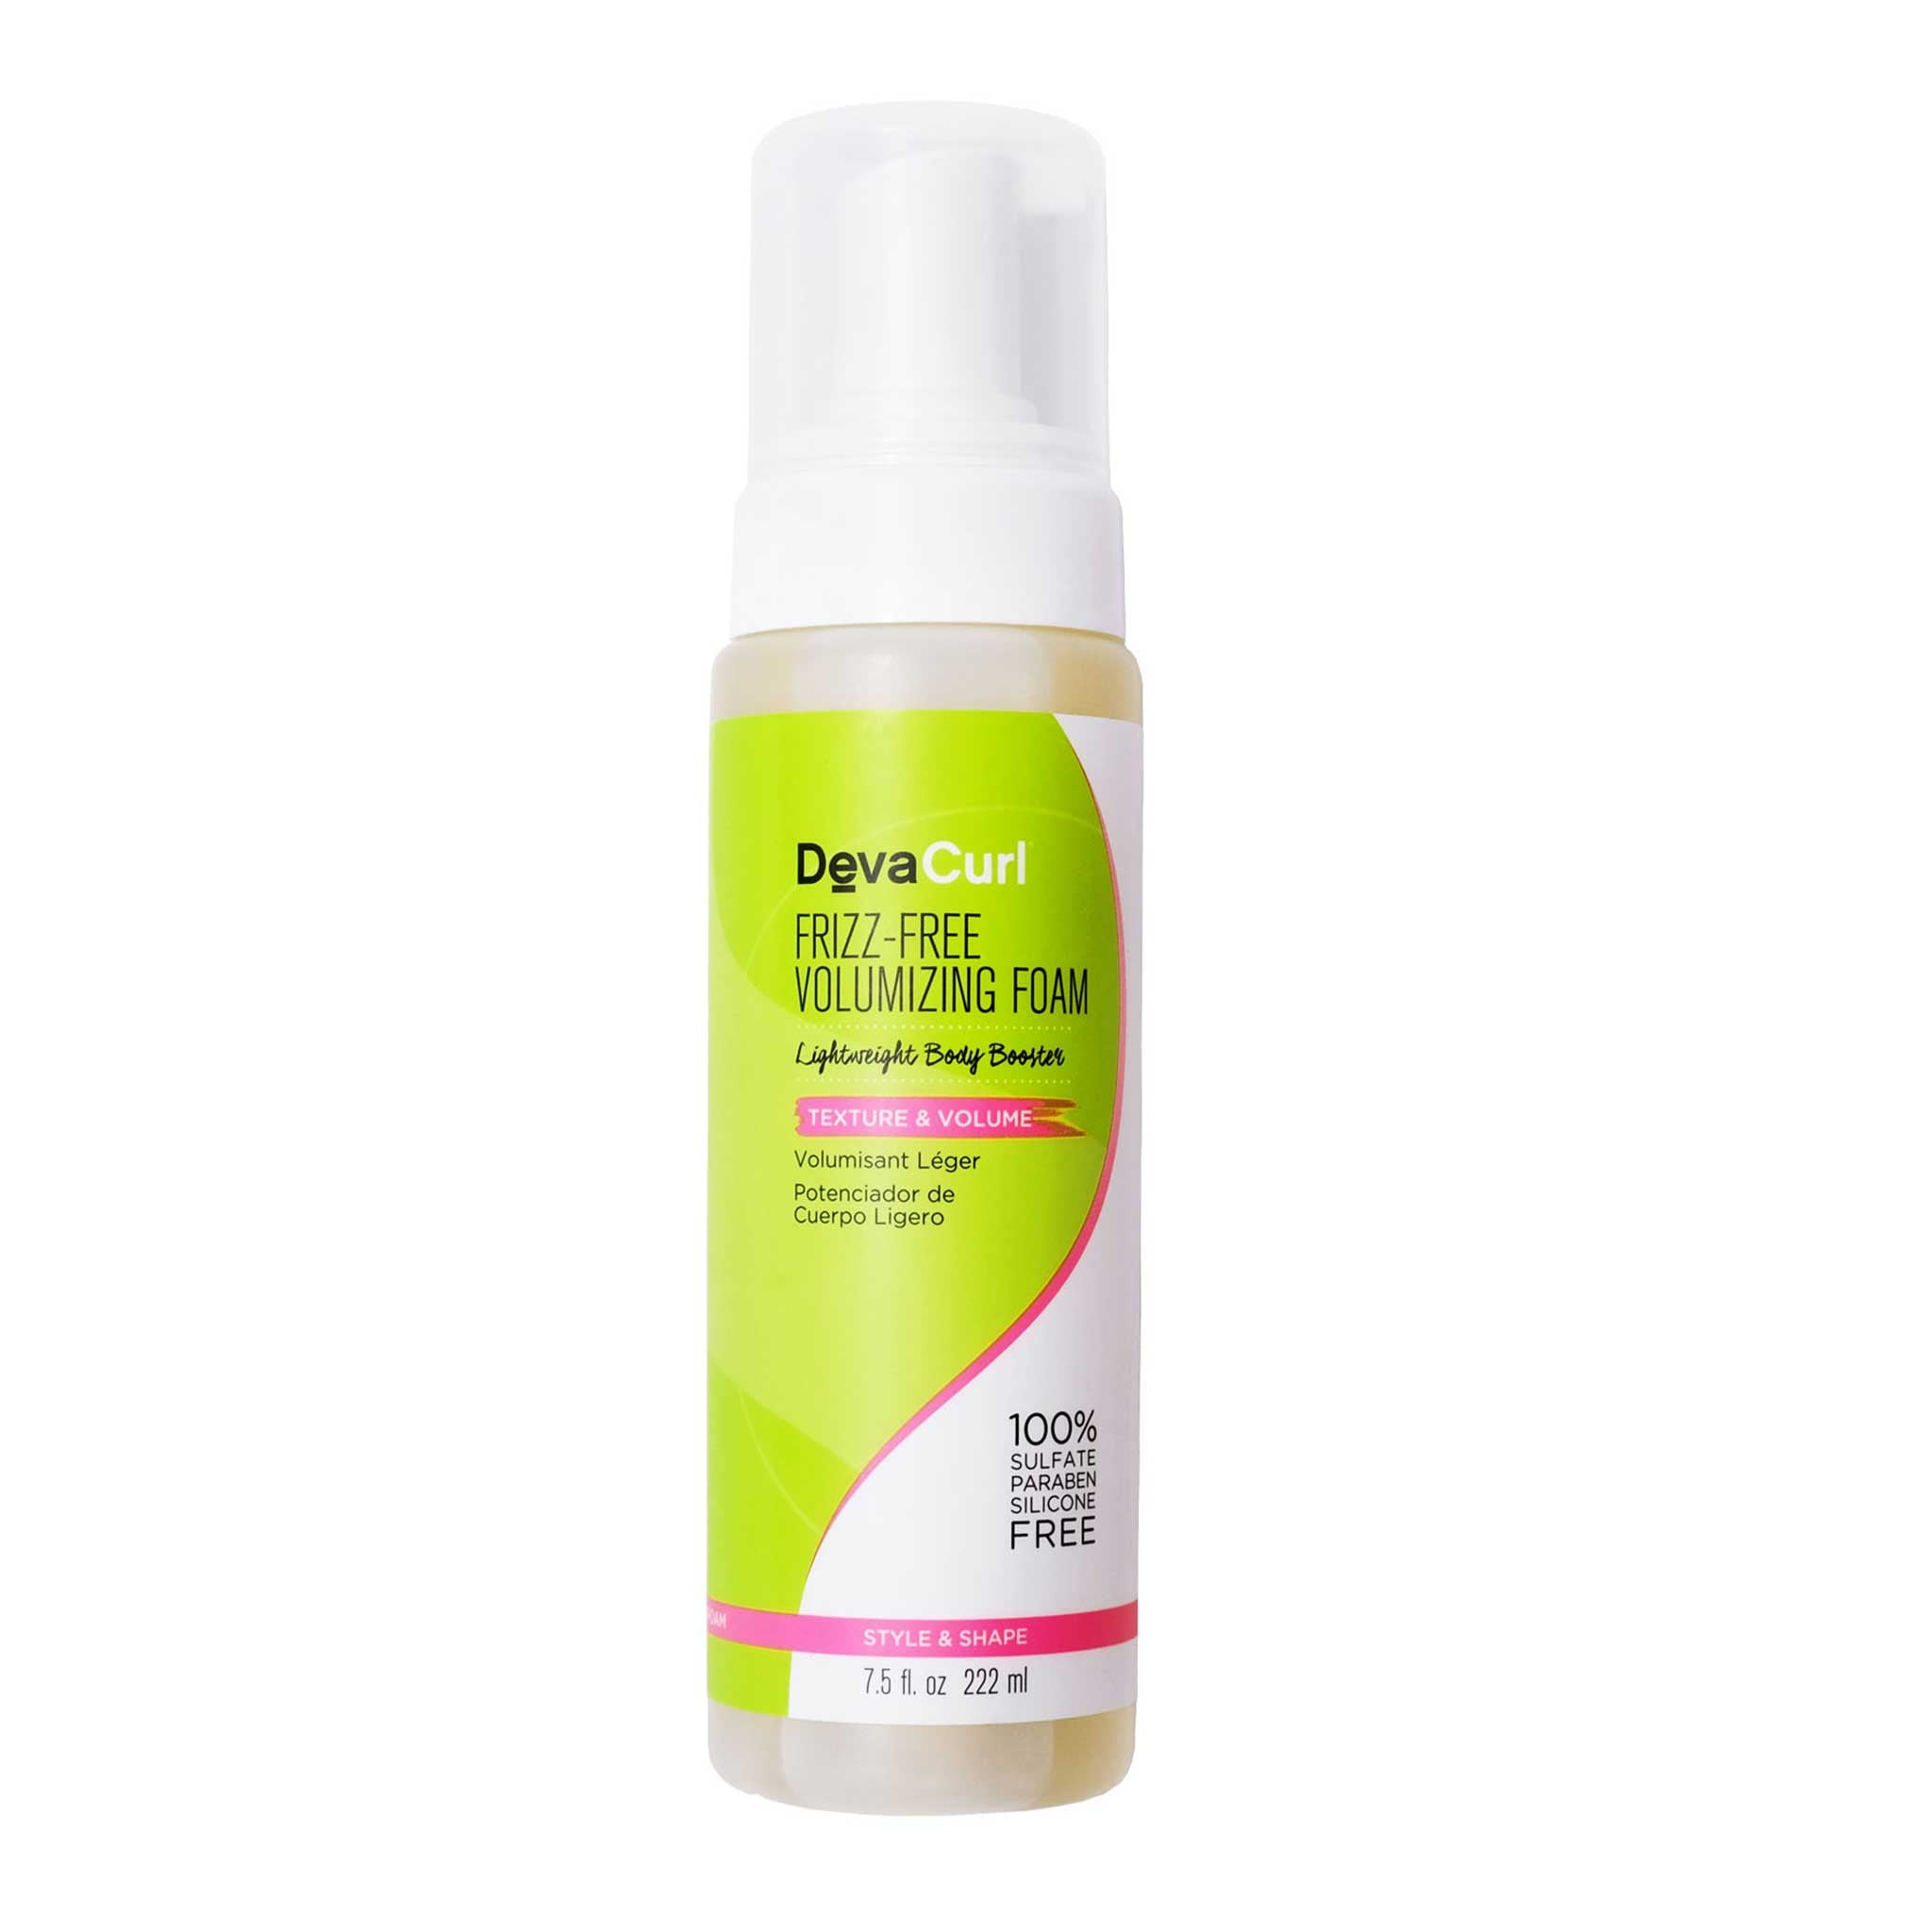 FRIZZ-FREE VOLUMIZING FOAM